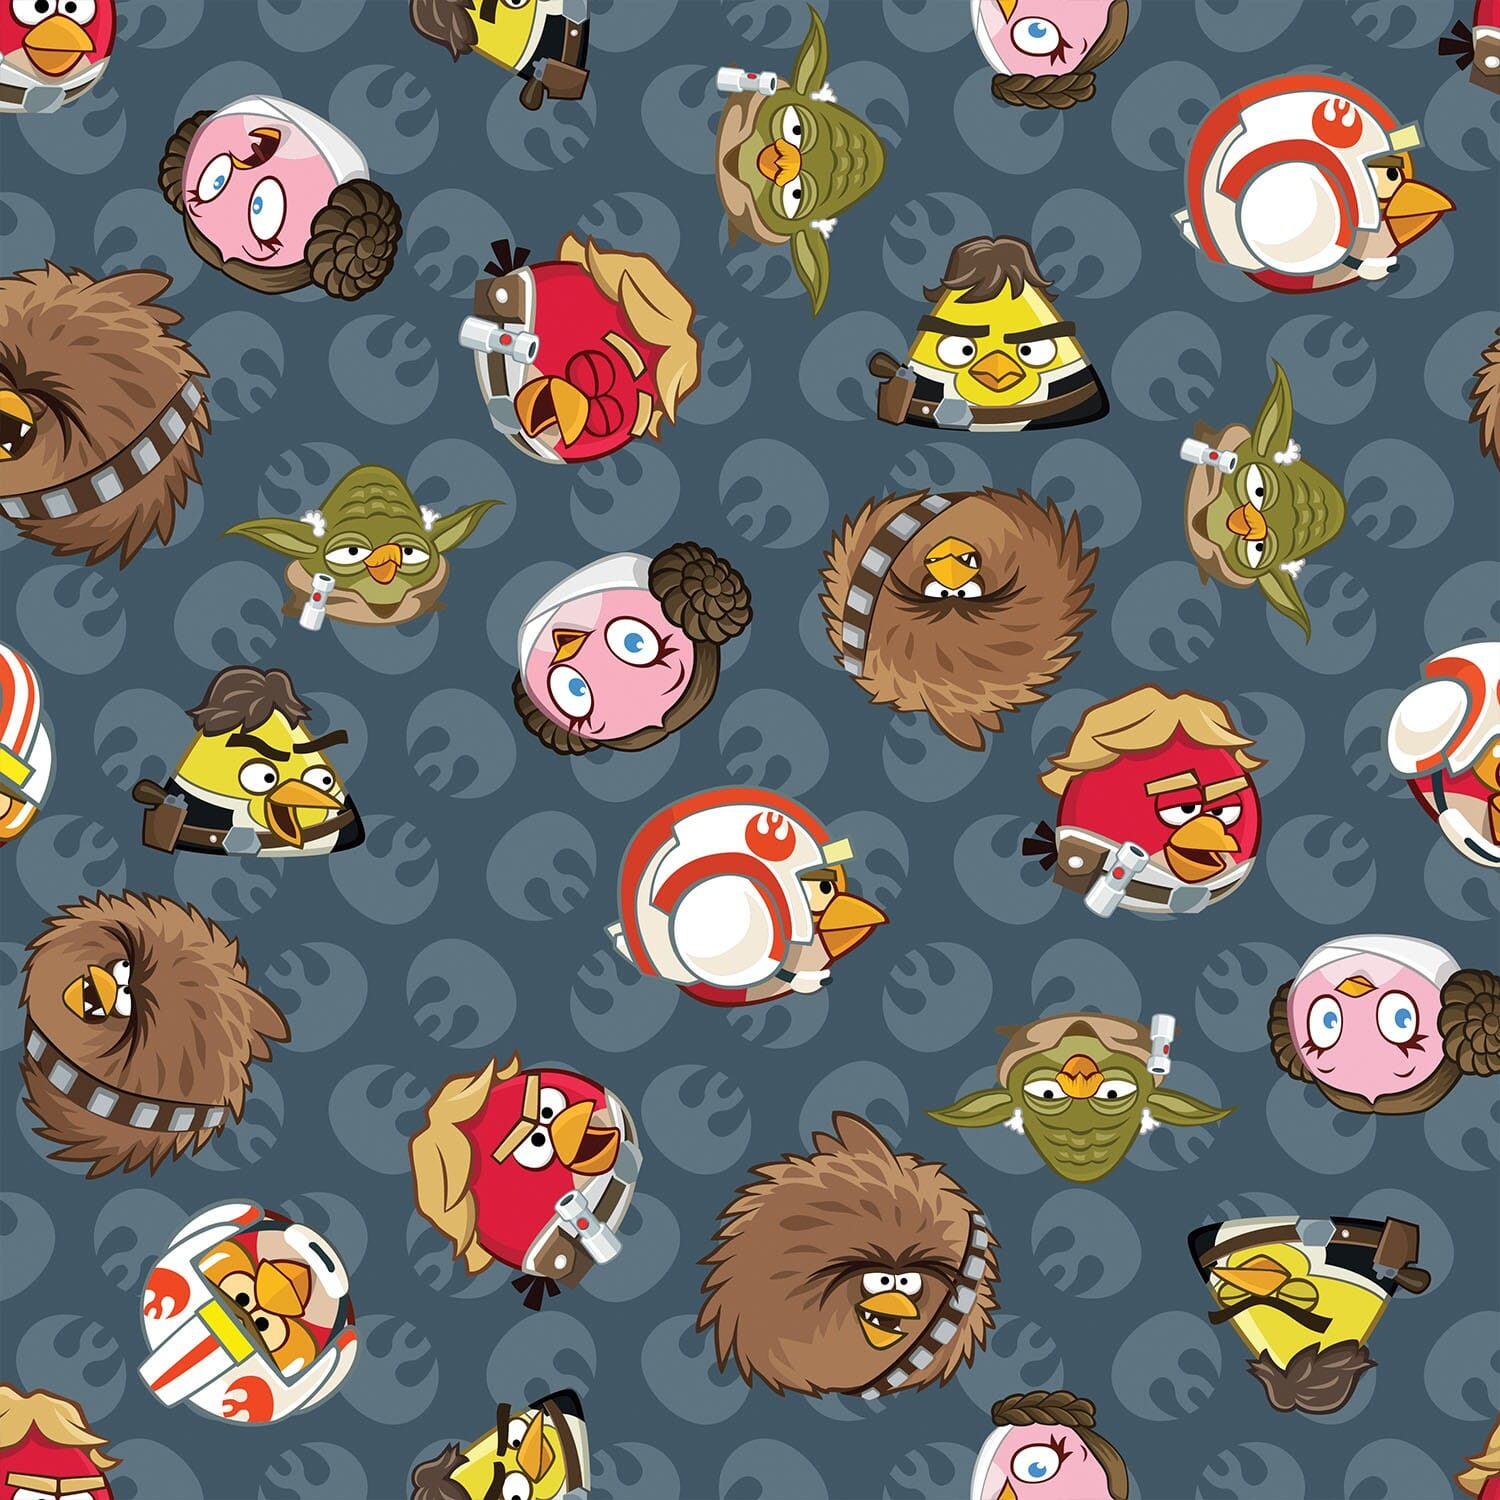 Patchwork Fabric Childrens Angry Birds Star Wars Fabric Rebel Leaders Grey